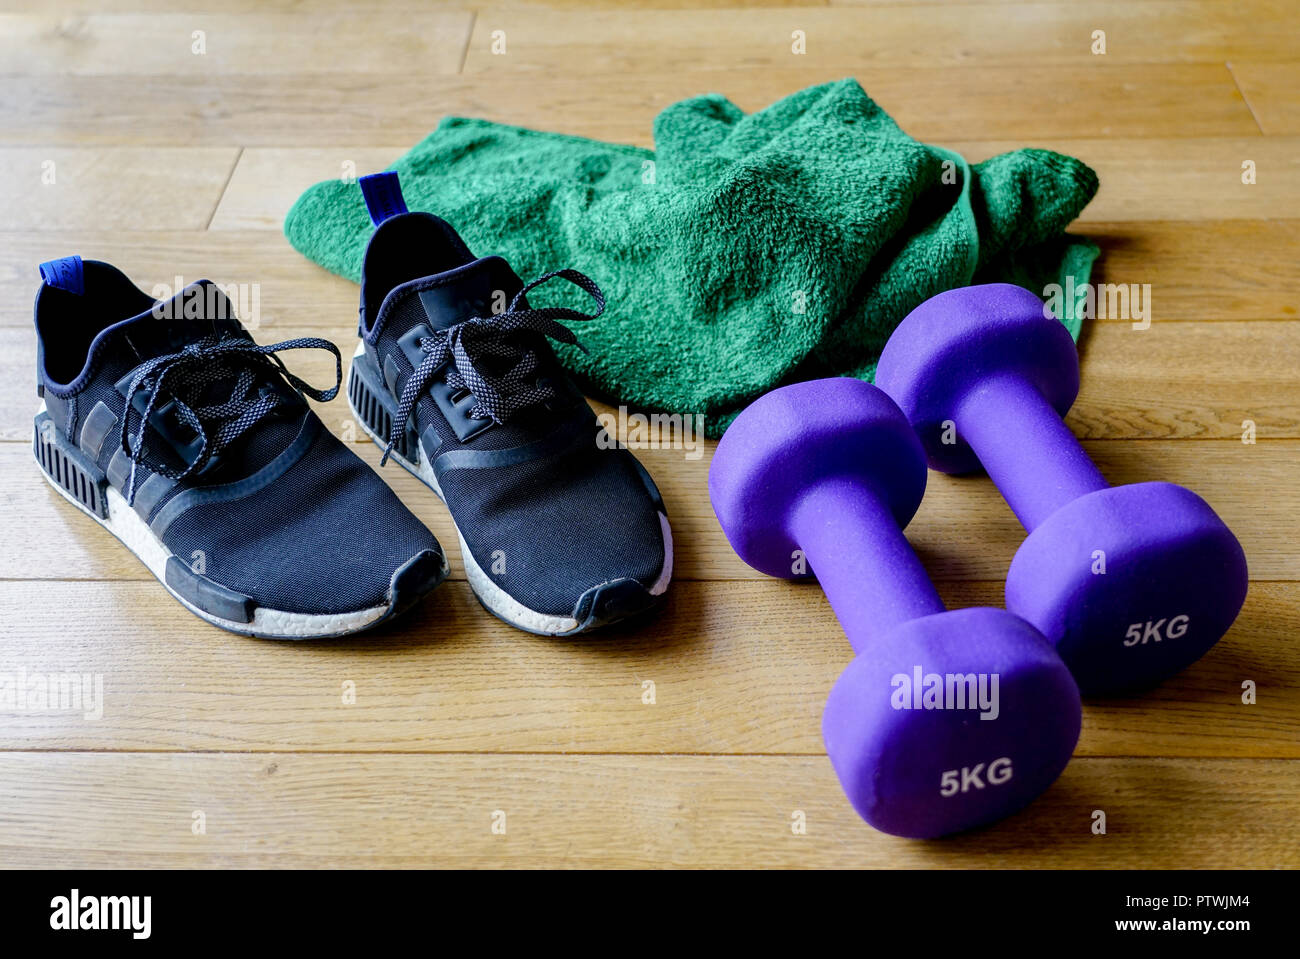 purple dumbbells, green towel and black sports shoes Stock Photo